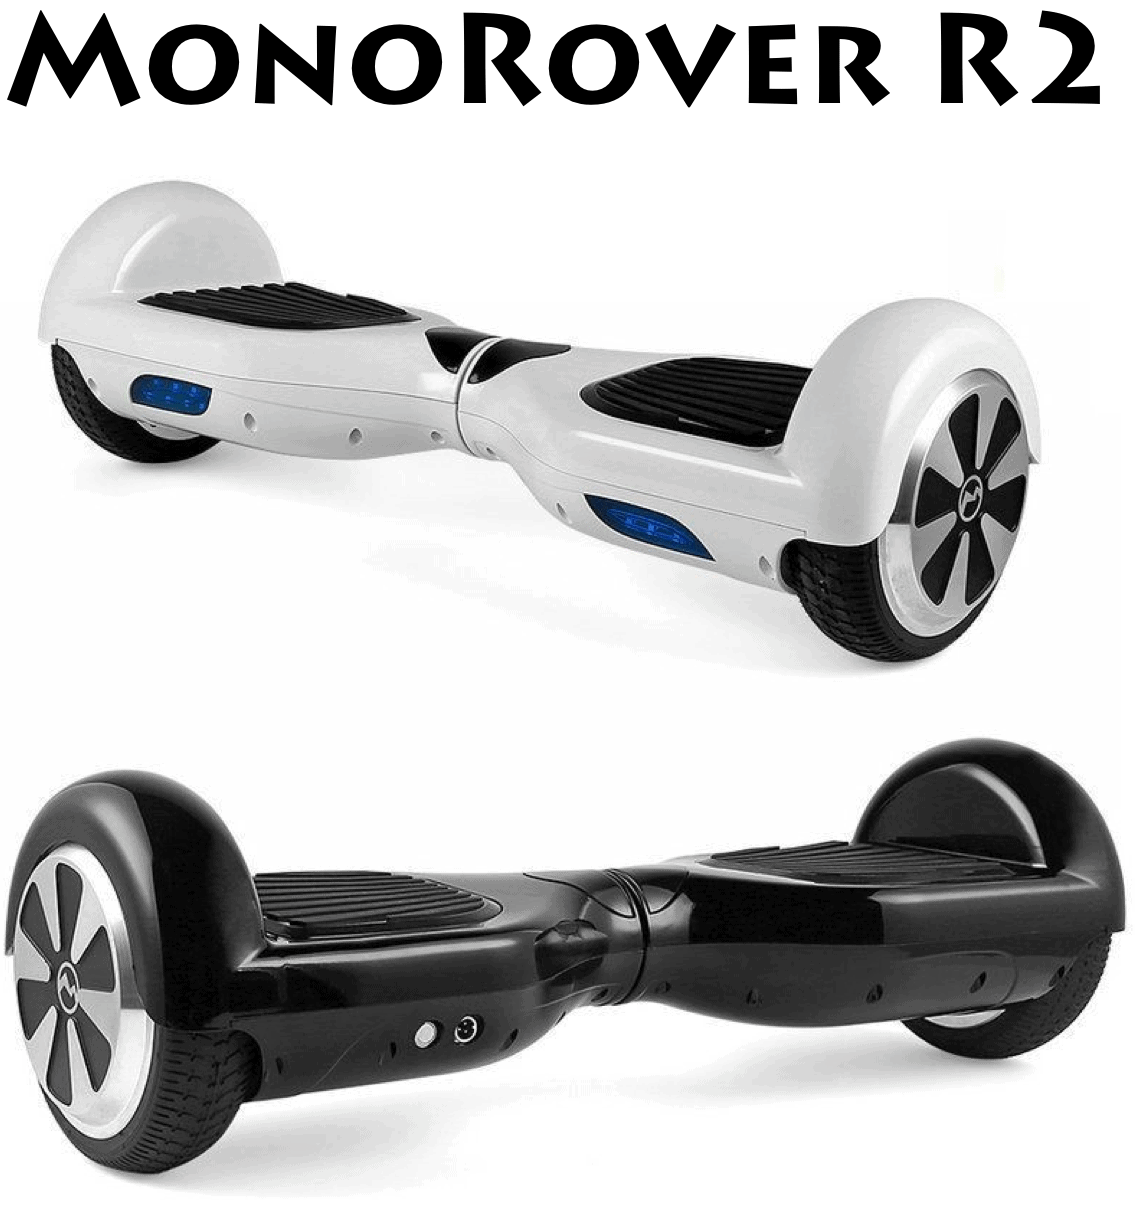 amazon MonoRover R2 reviews MonoRover R2 on amazon newest MonoRover R2 prices of MonoRover R2 MonoRover R2 deals best deals on MonoRover R2 buying a MonoRover R2 lastest MonoRover R2 what is a MonoRover R2 MonoRover R2 at amazon where to buy MonoRover R2 where can i you get a MonoRover R2 online purchase MonoRover R2 MonoRover R2 sale off MonoRover R2 discount cheapest MonoRover R2 MonoRover R2 for sale